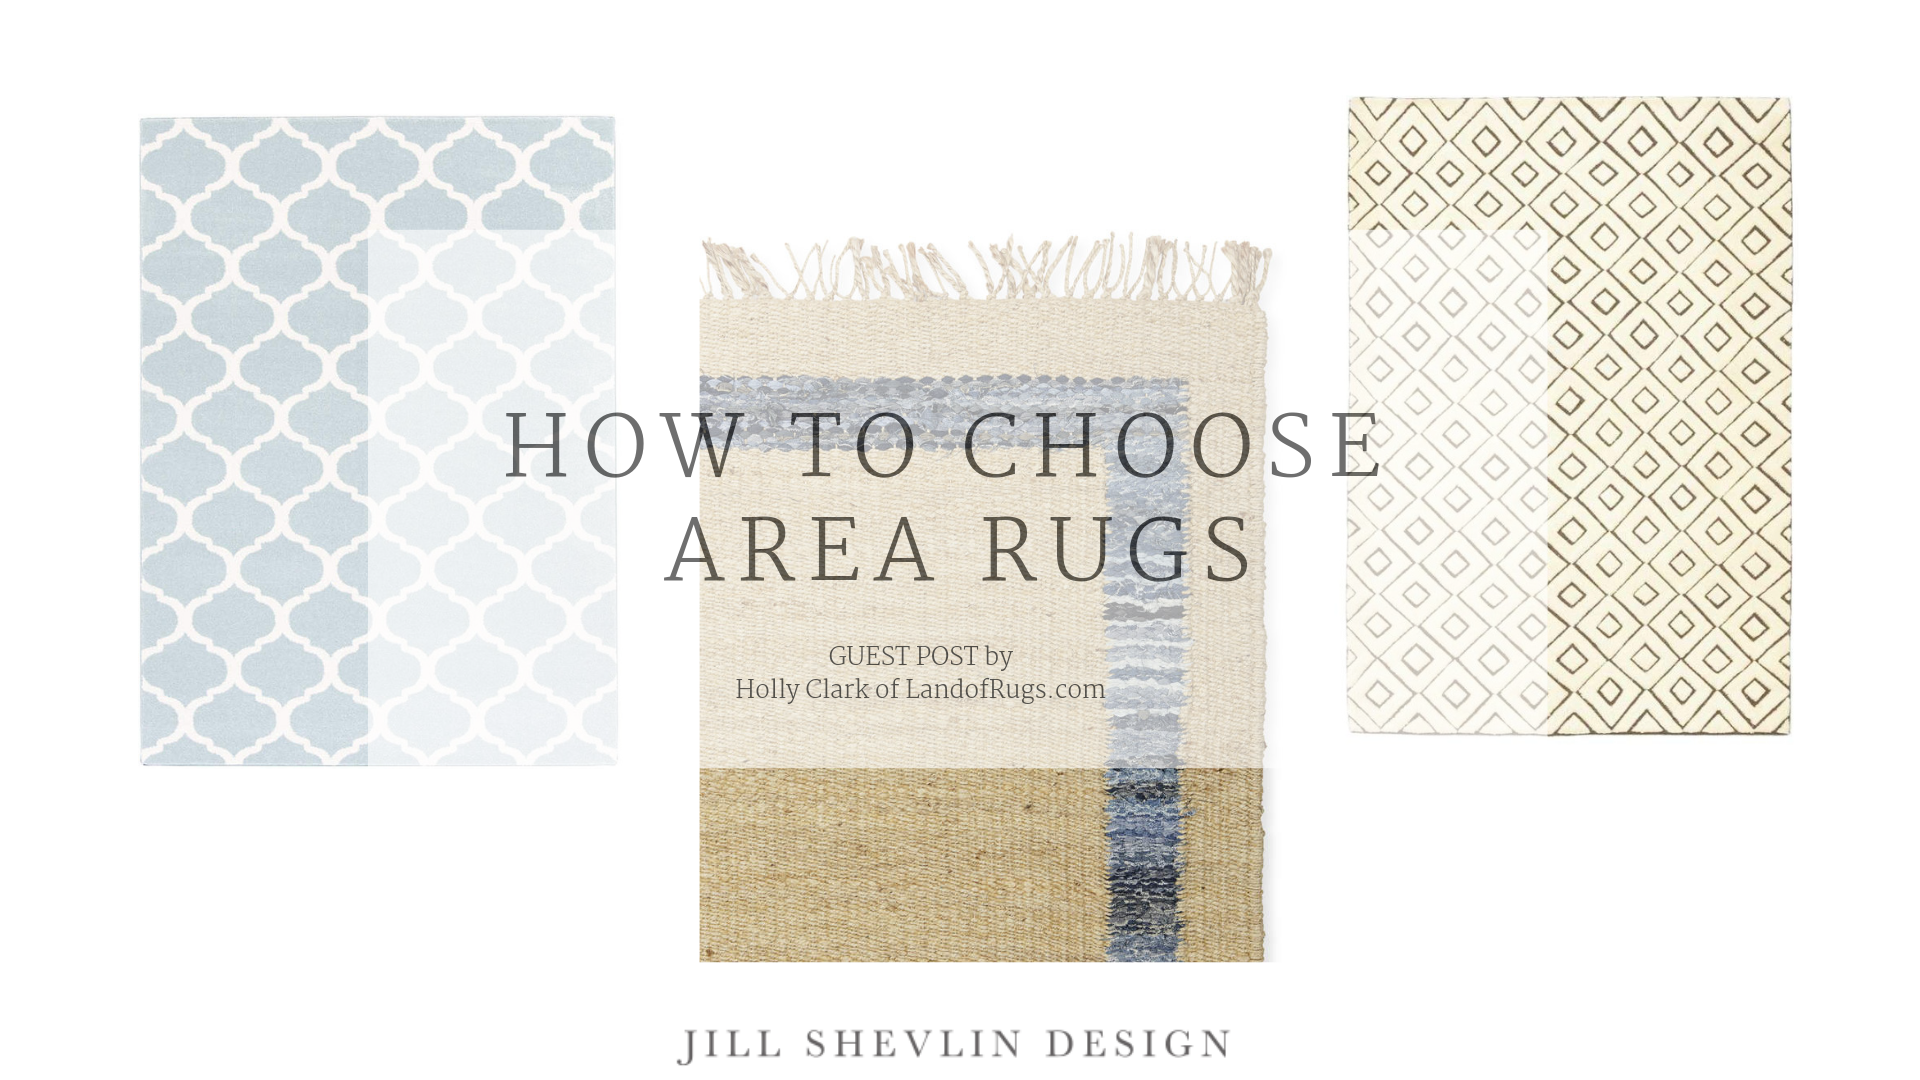 How to Choose and Area Rug Shevlin Design Vero Beach Interior Designer, Vero Beach Home Decor, Decorate Vero Beach home